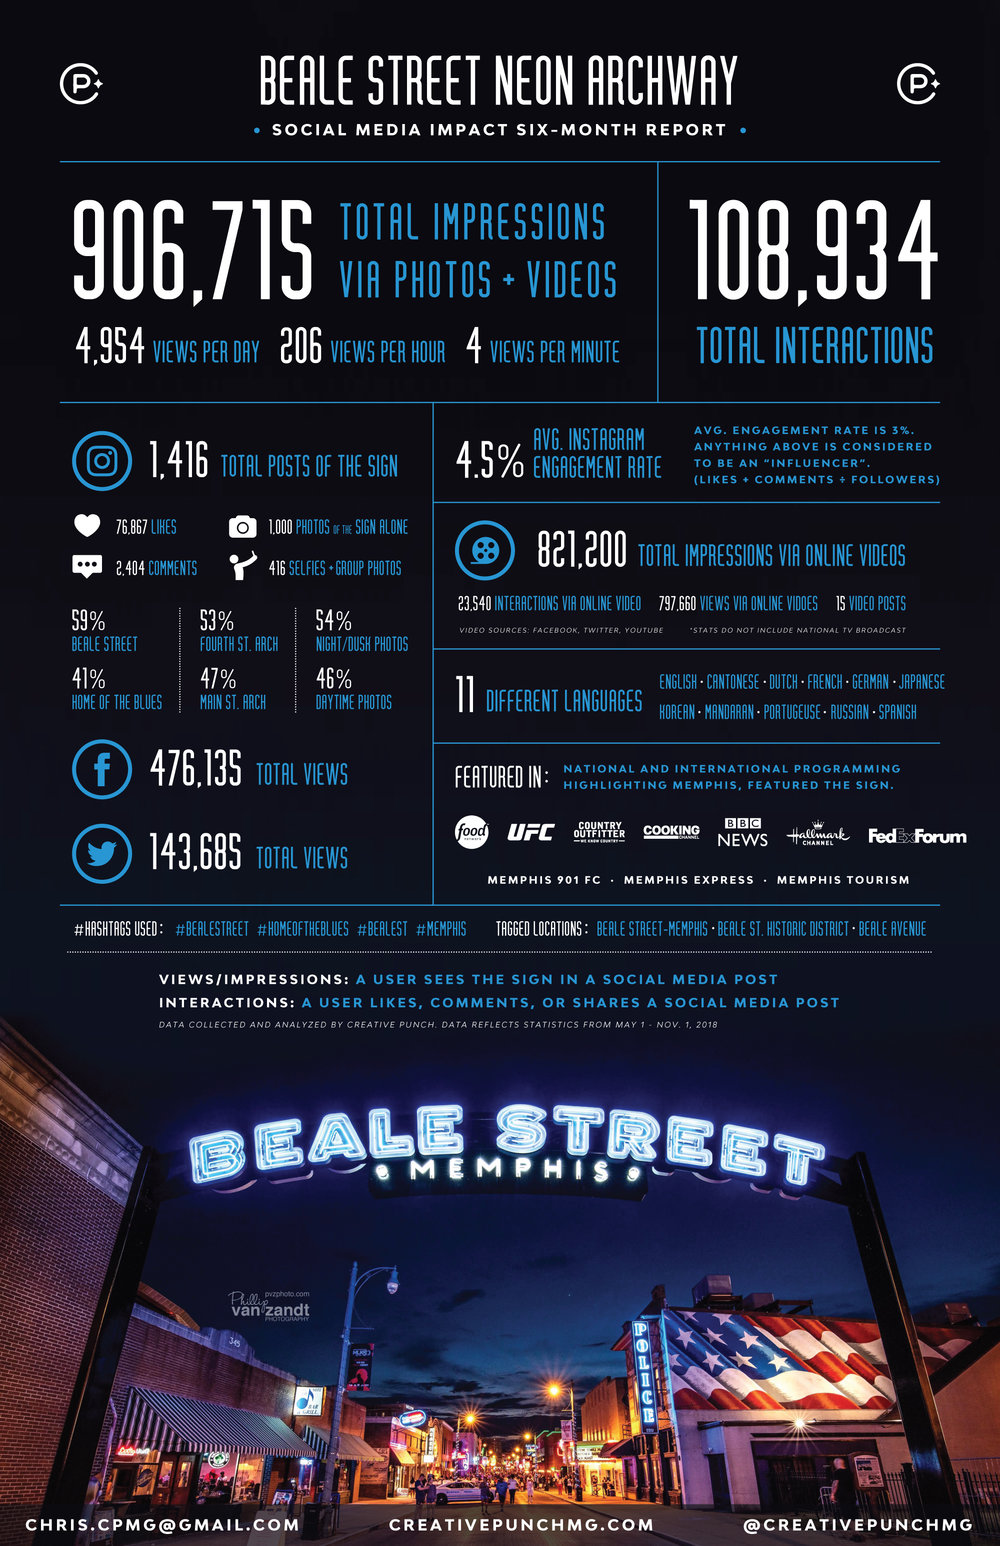 Beale-Street-Archway-Infographic_CPMG_11.19.18-updated.jpg